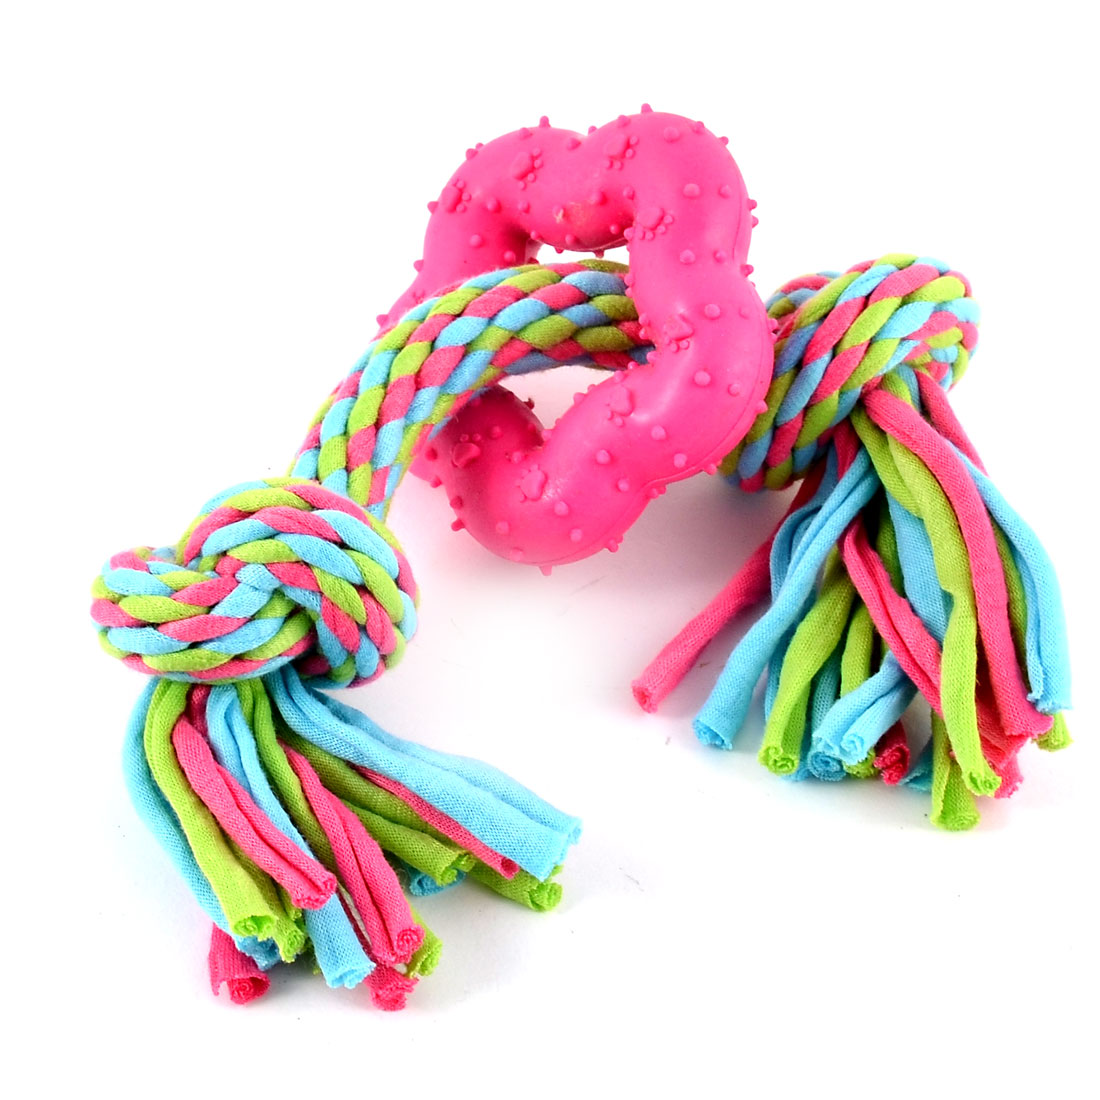 Pet Puppy Dog Teeth Cleanning Chew Ball Knotted Braided Rope Exercise Tool